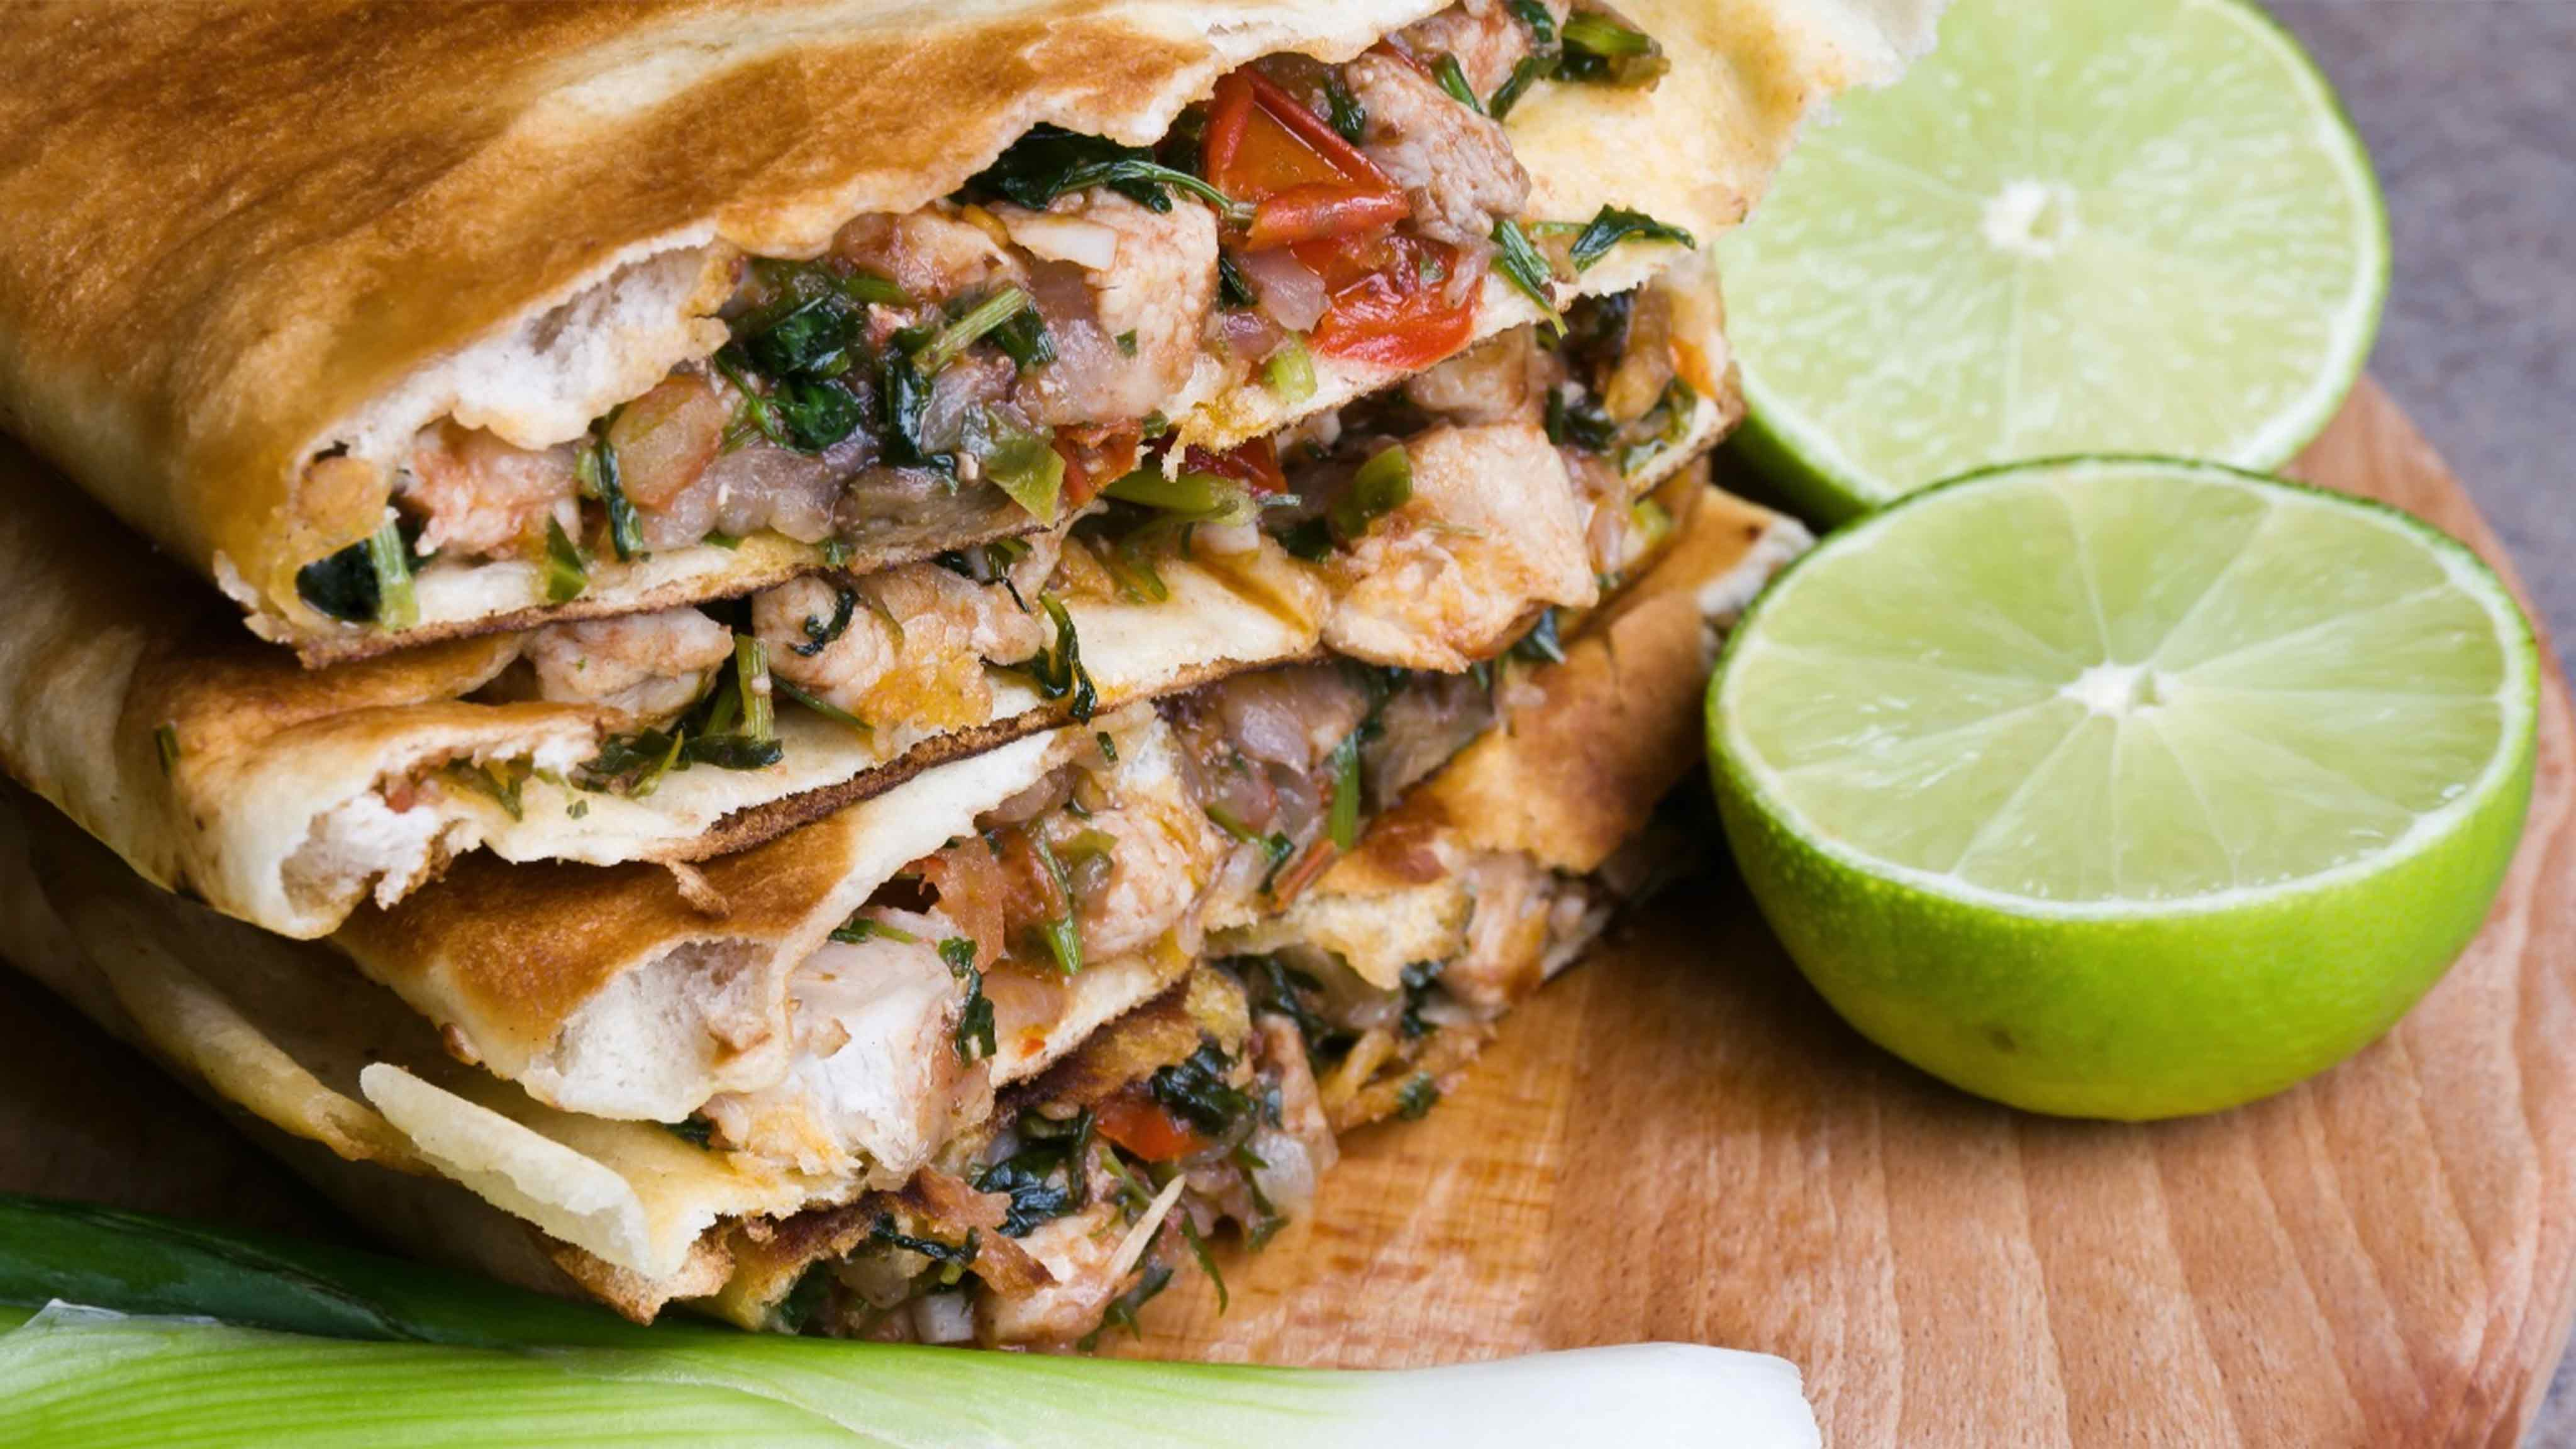 Image for Recipe Steak Chimichurri Quesadillas